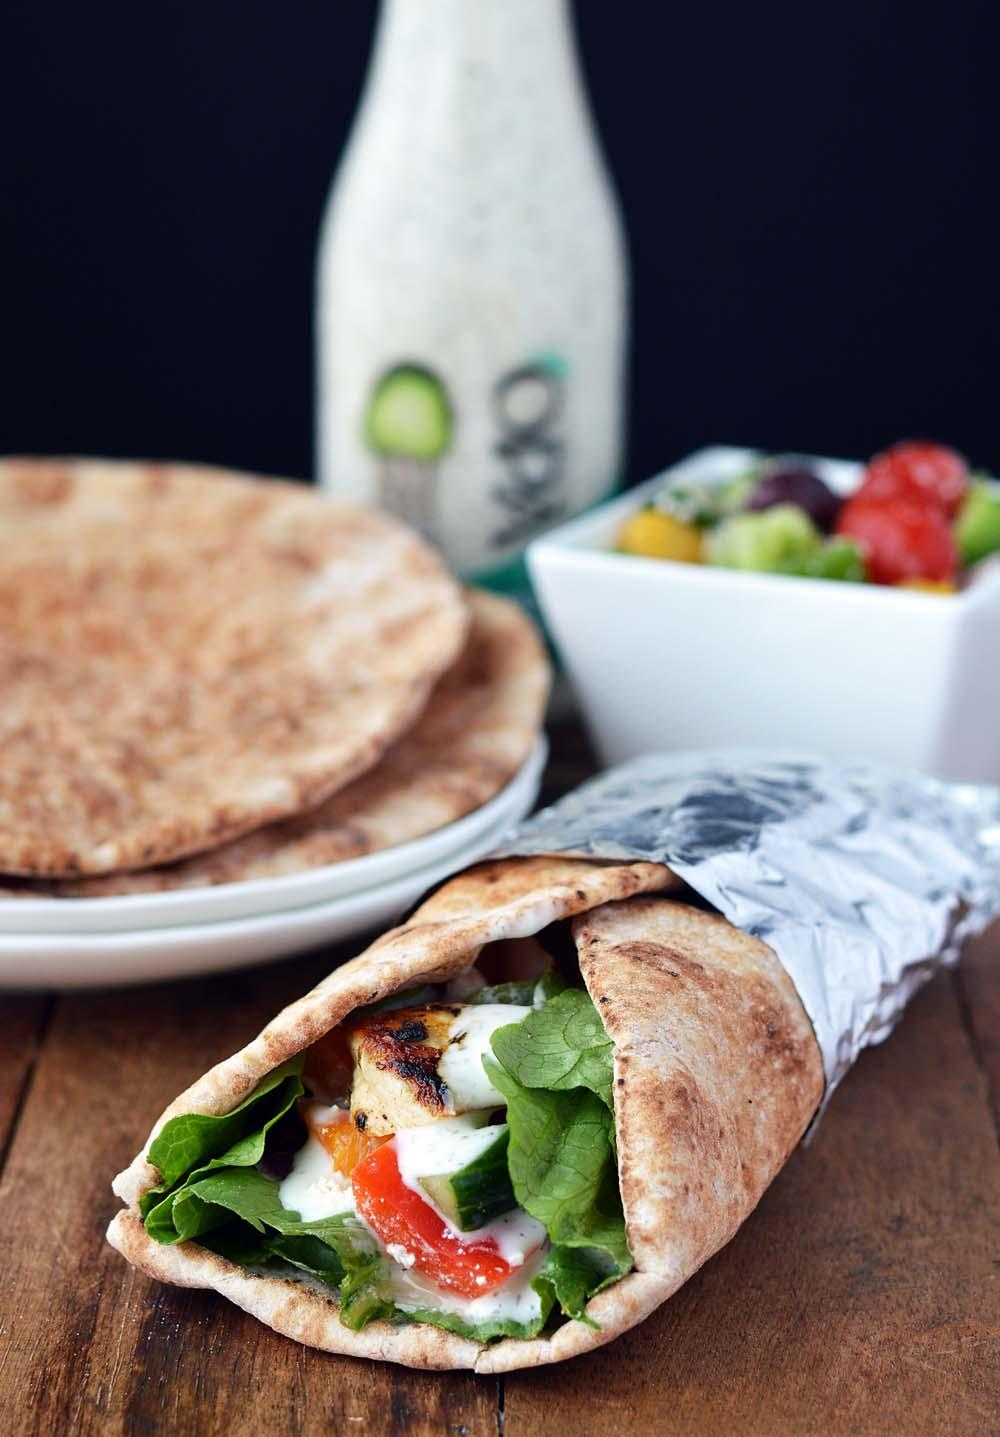 Turkey in a pita camping food ideas